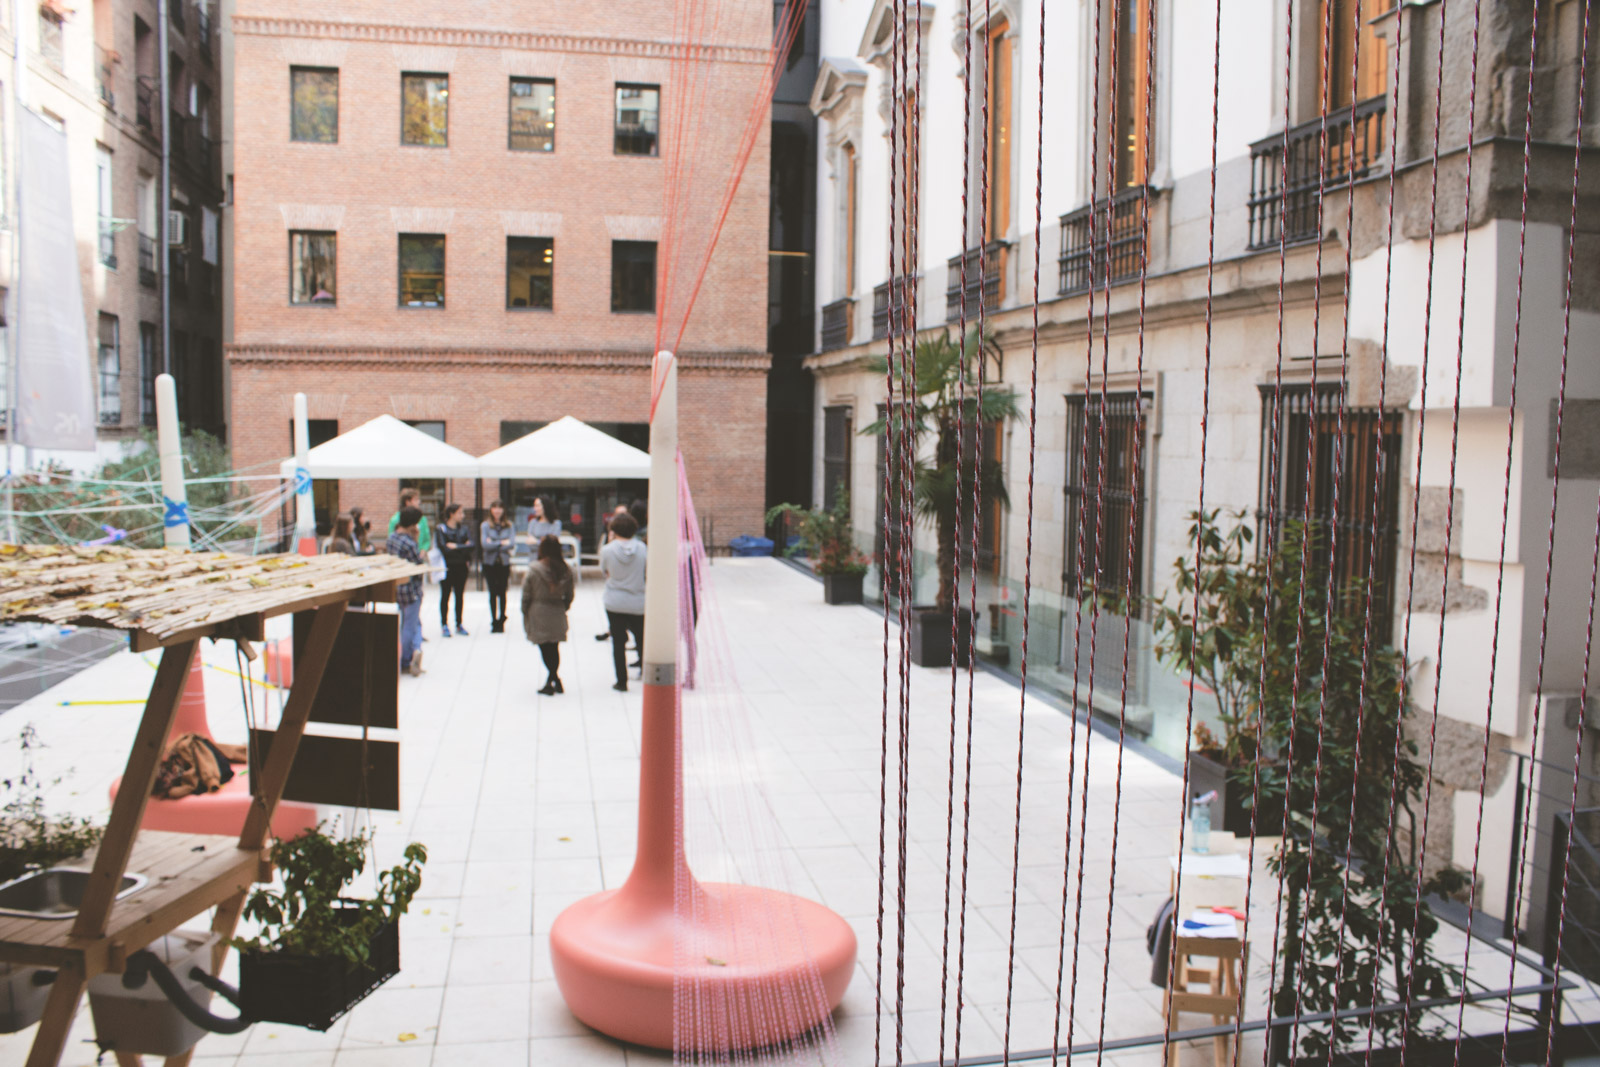 Los alrededores workshop en el ied design madrid ied for Donde estudiar diseno de interiores en madrid